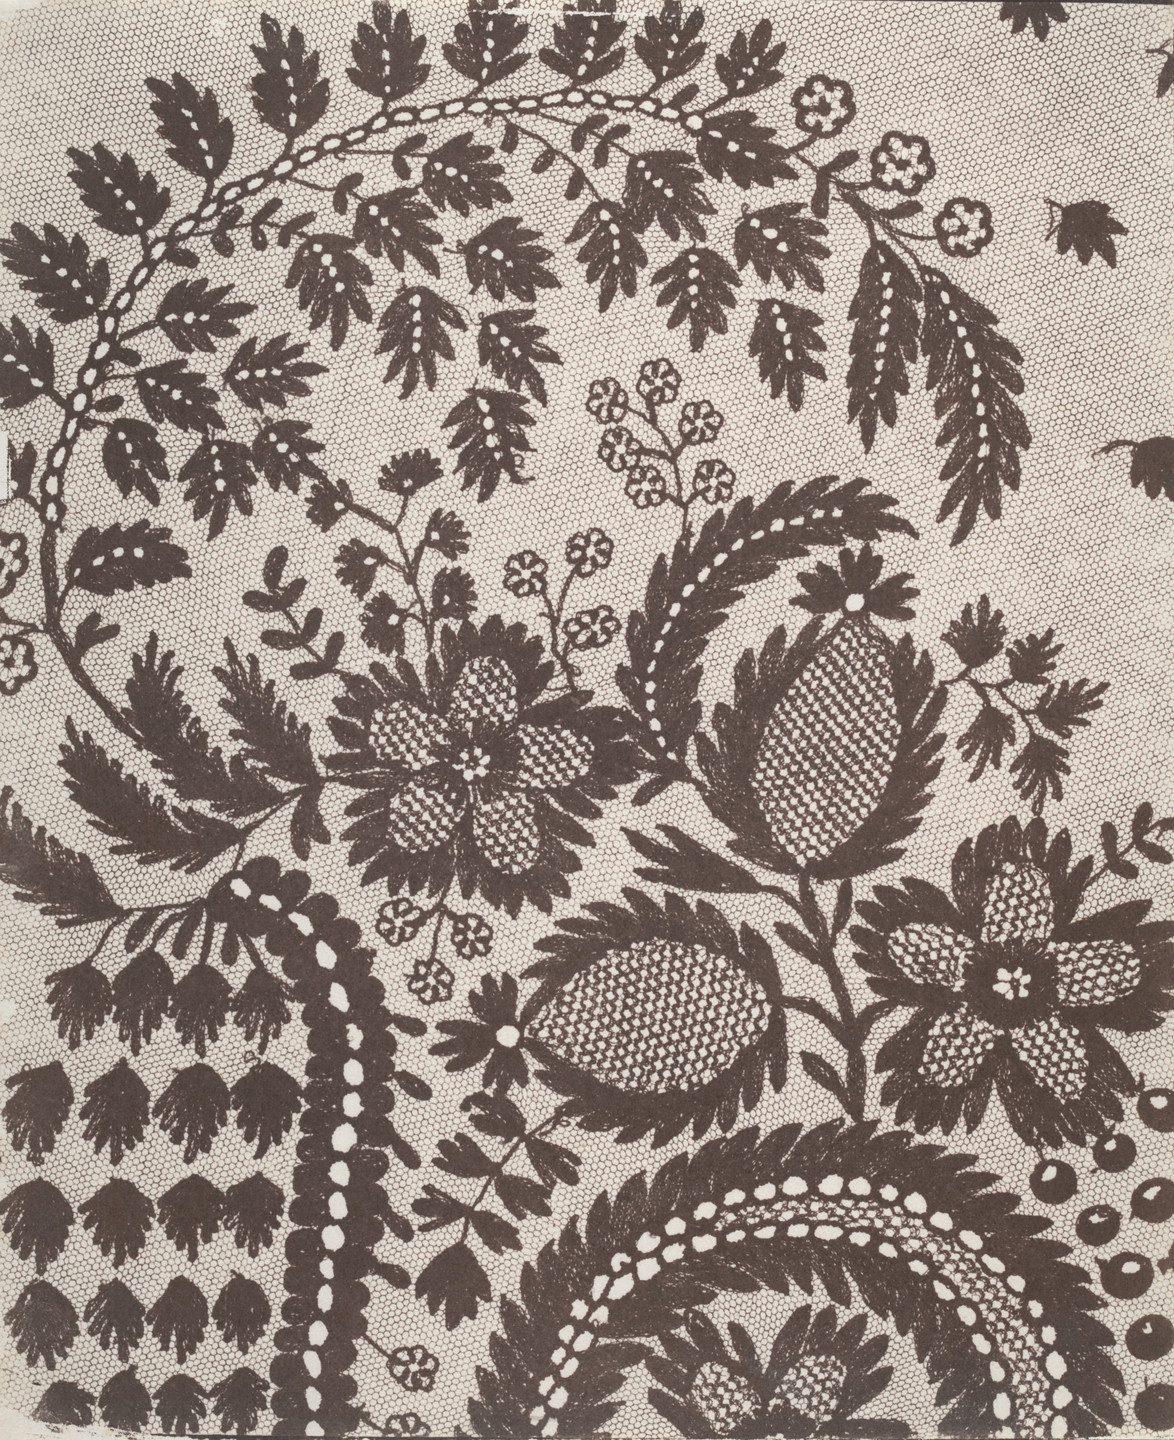 William Henry Fox Talbot. Lace. 1840s